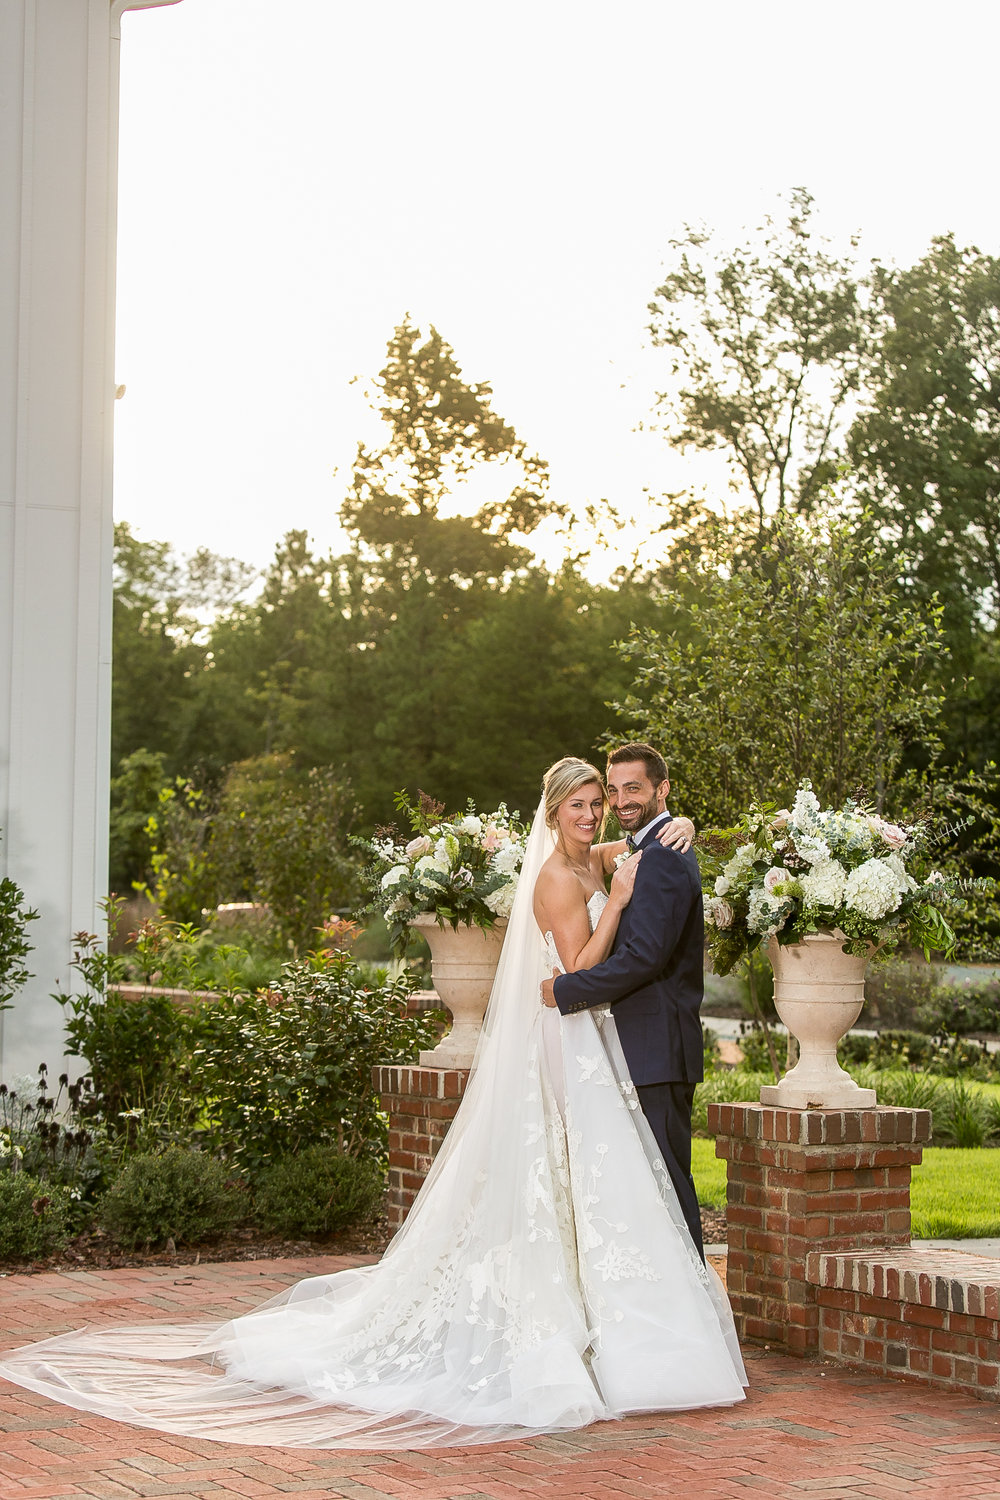 Southern Summer at Home Wedding Barn Chapel Hill NC bride and groom